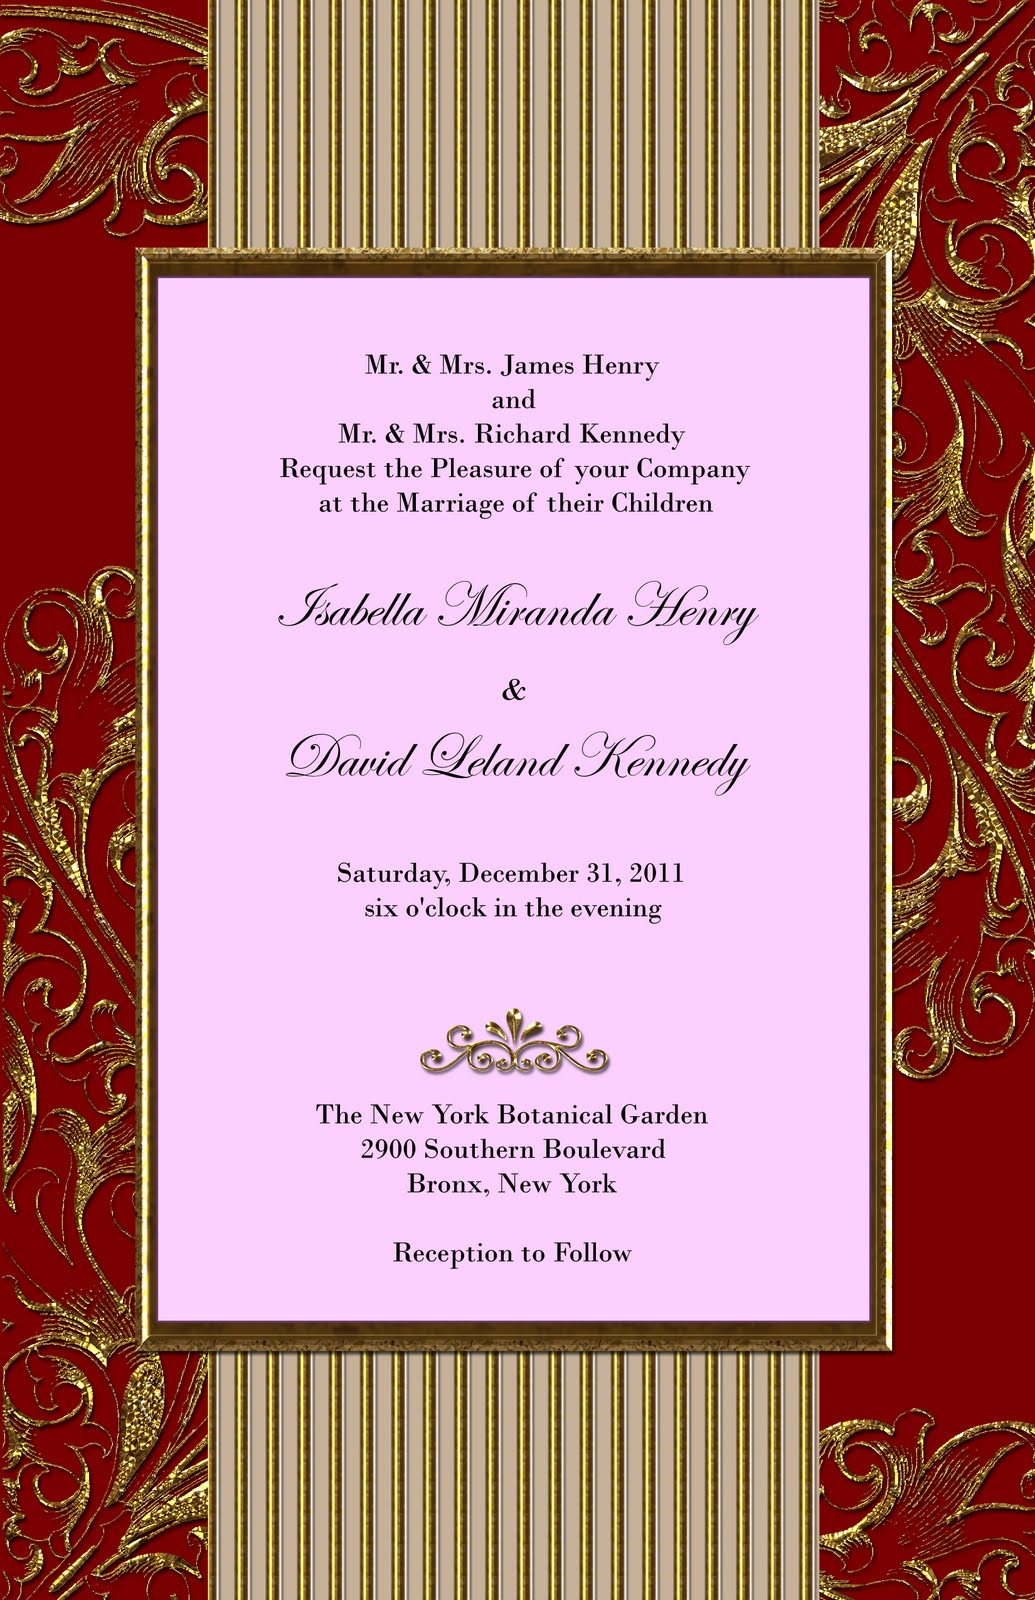 Red Invitations as luxury invitation layout